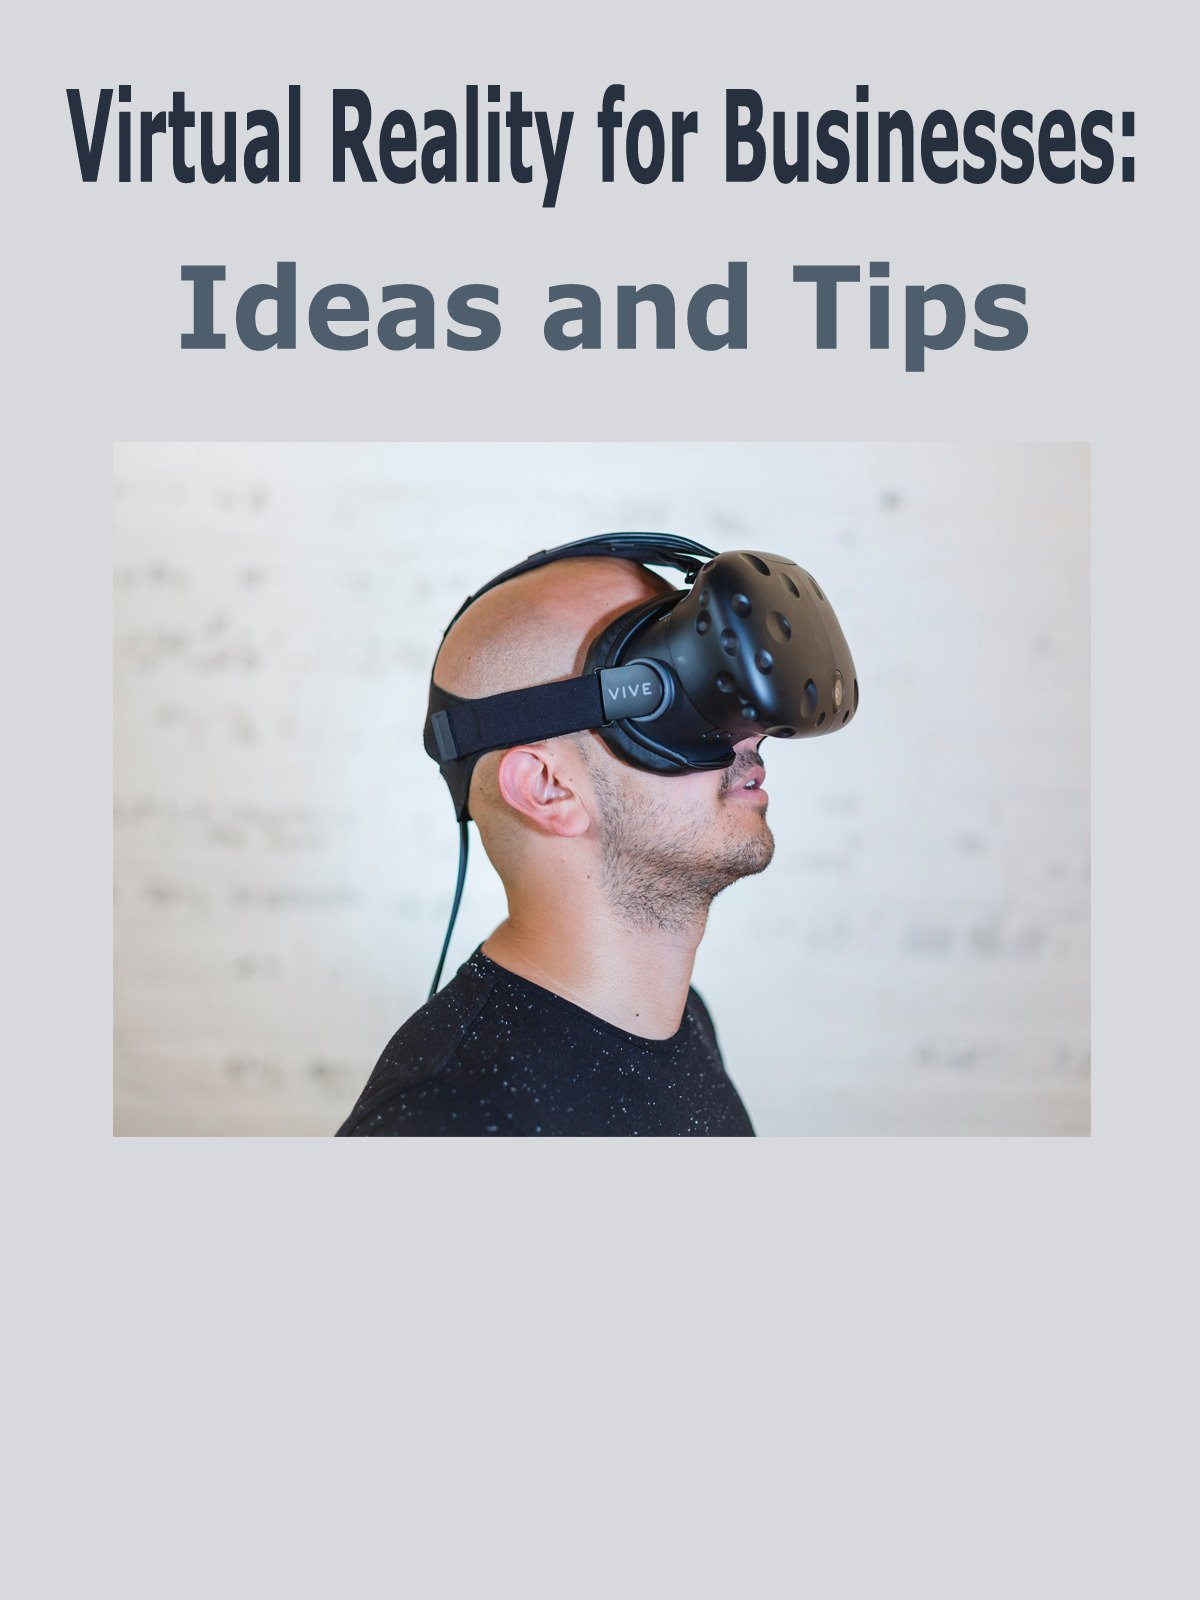 Virtual Reality for Businesses: Ideas and Tips